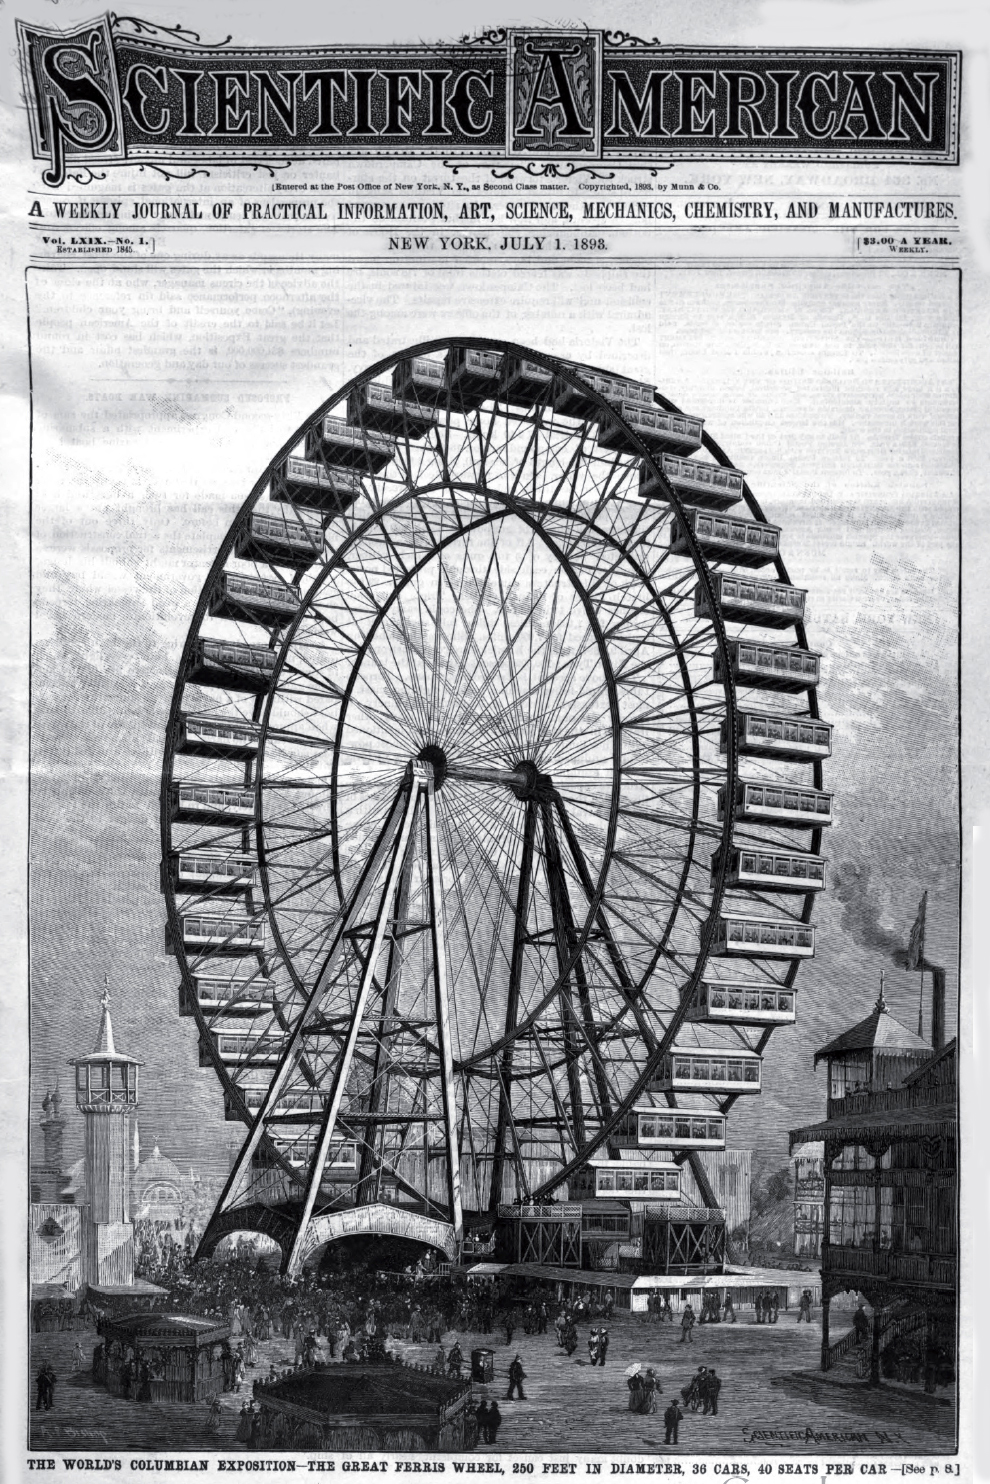 The Ferris Wheel at the 1893 Columbian Exhibition in Chicago.